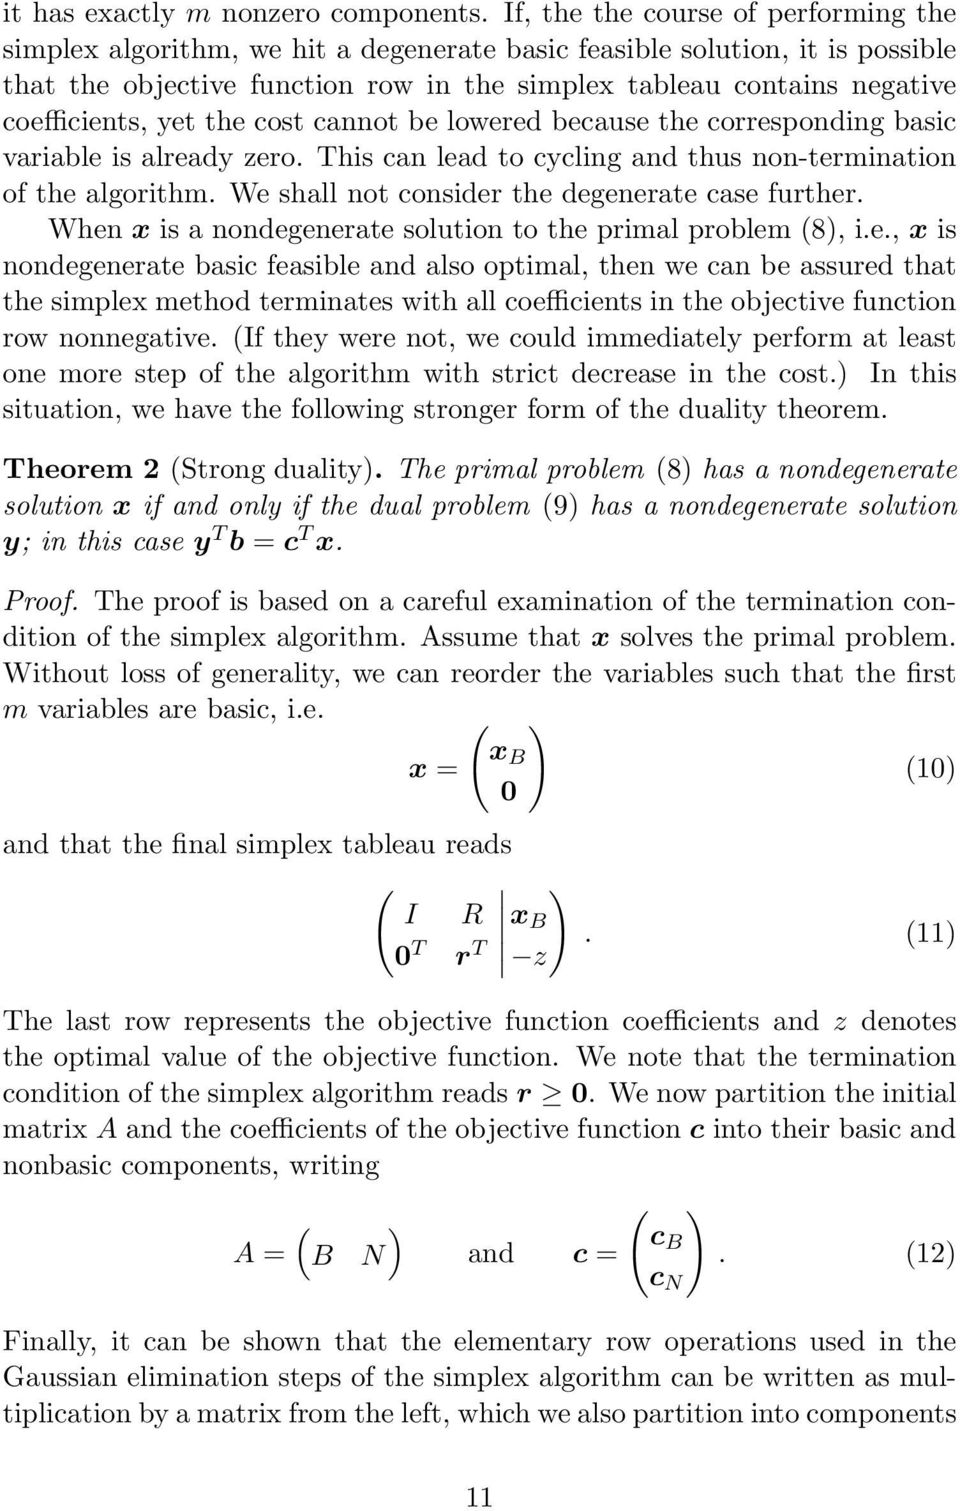 coefficients, yet the cost cannot be lowered because the corresponding basic variable is already zero. This can lead to cycling and thus non-termination of the algorithm.